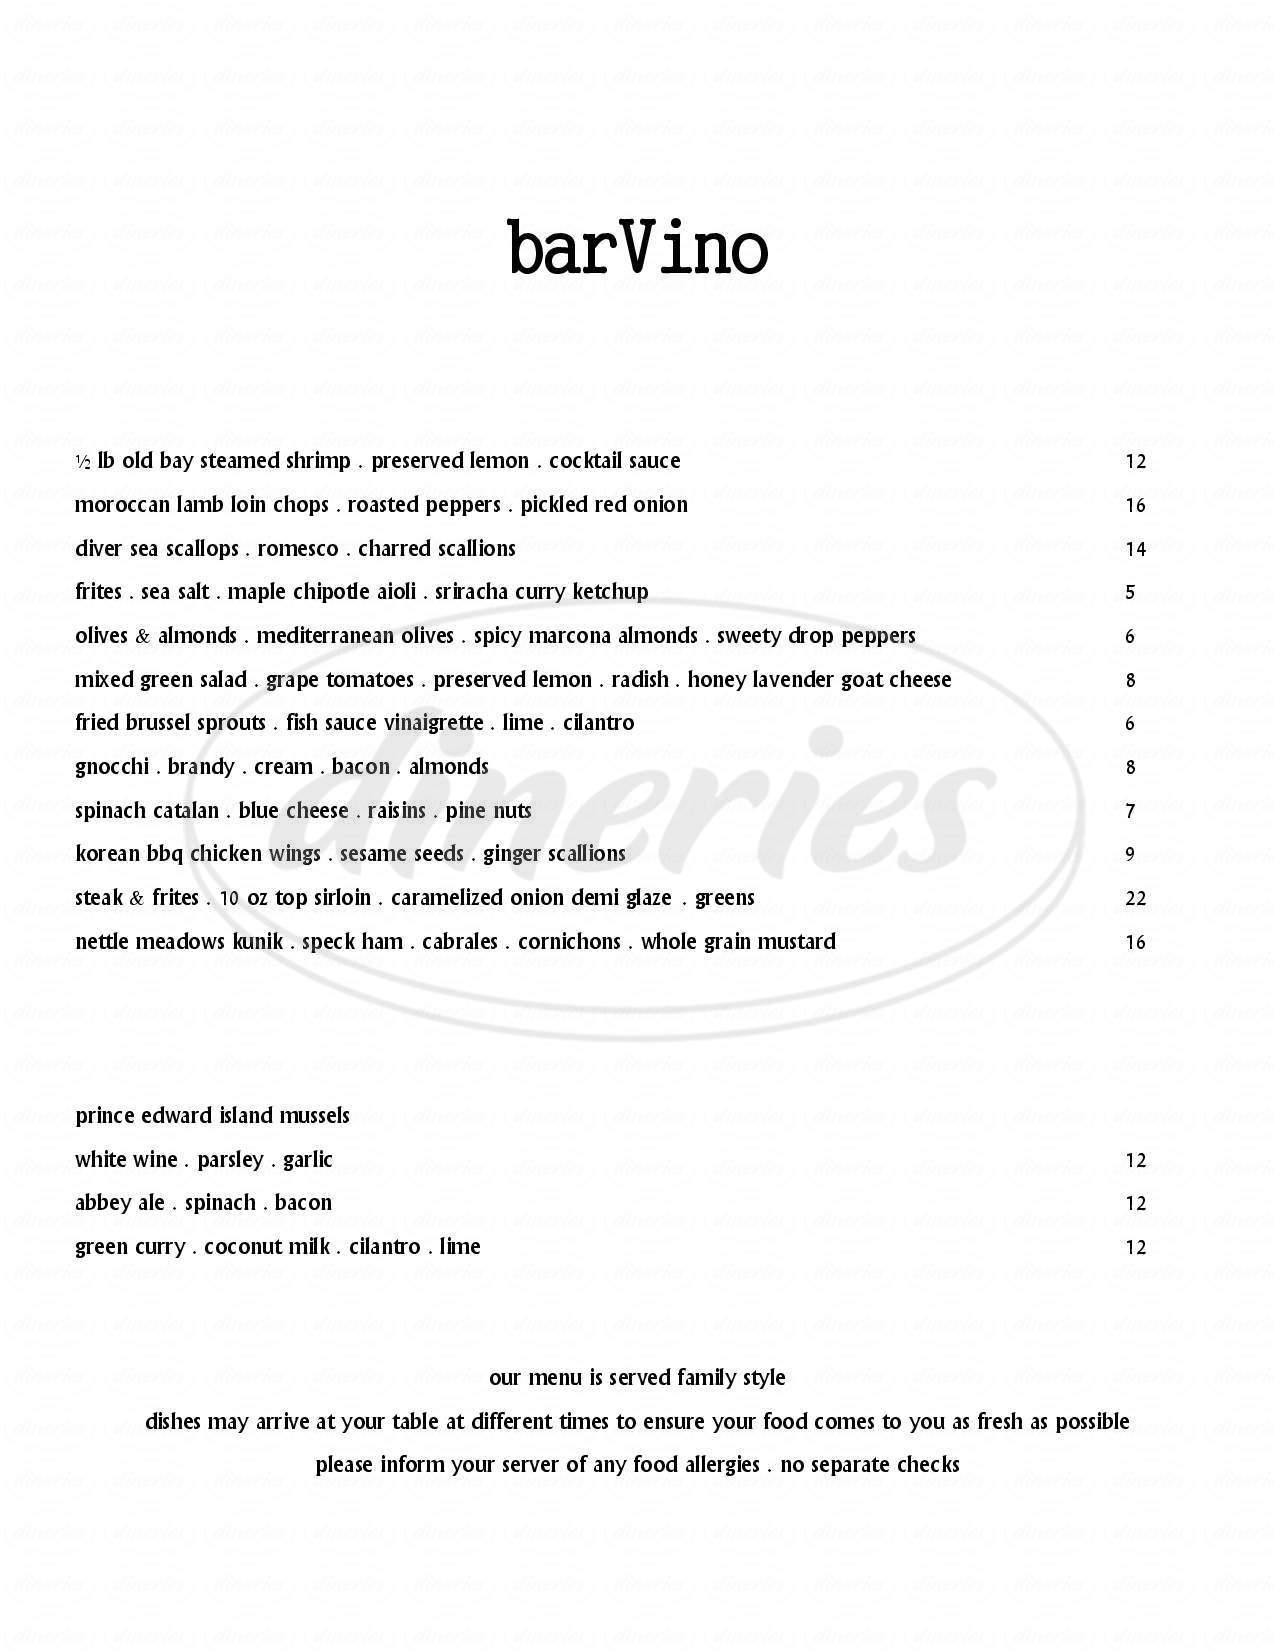 menu for barVino